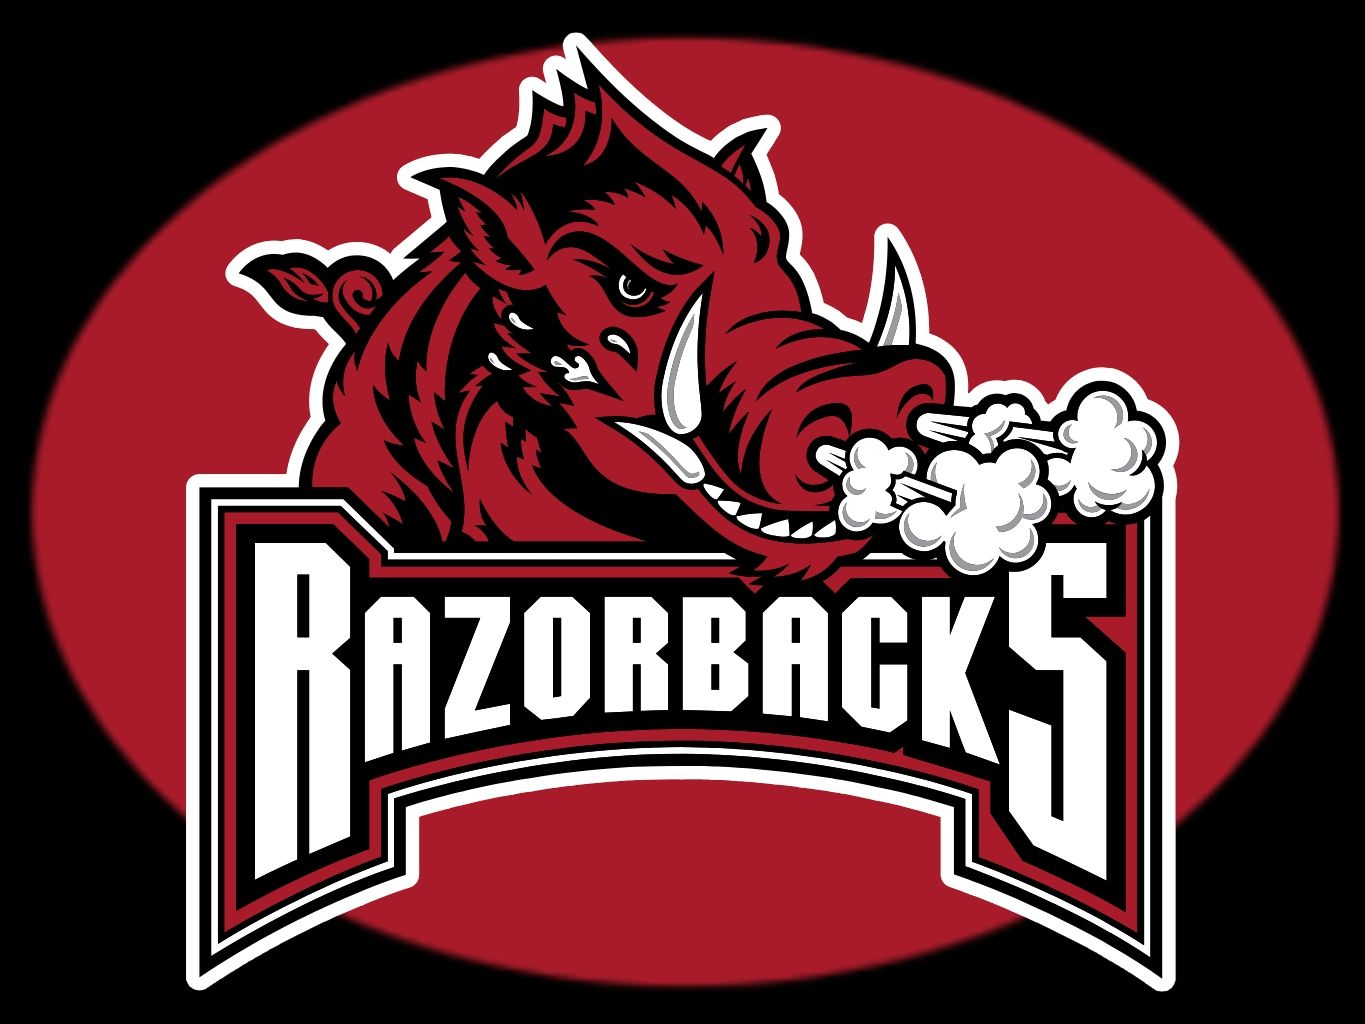 The Razorbacks, also known as the Hogs, are the names of